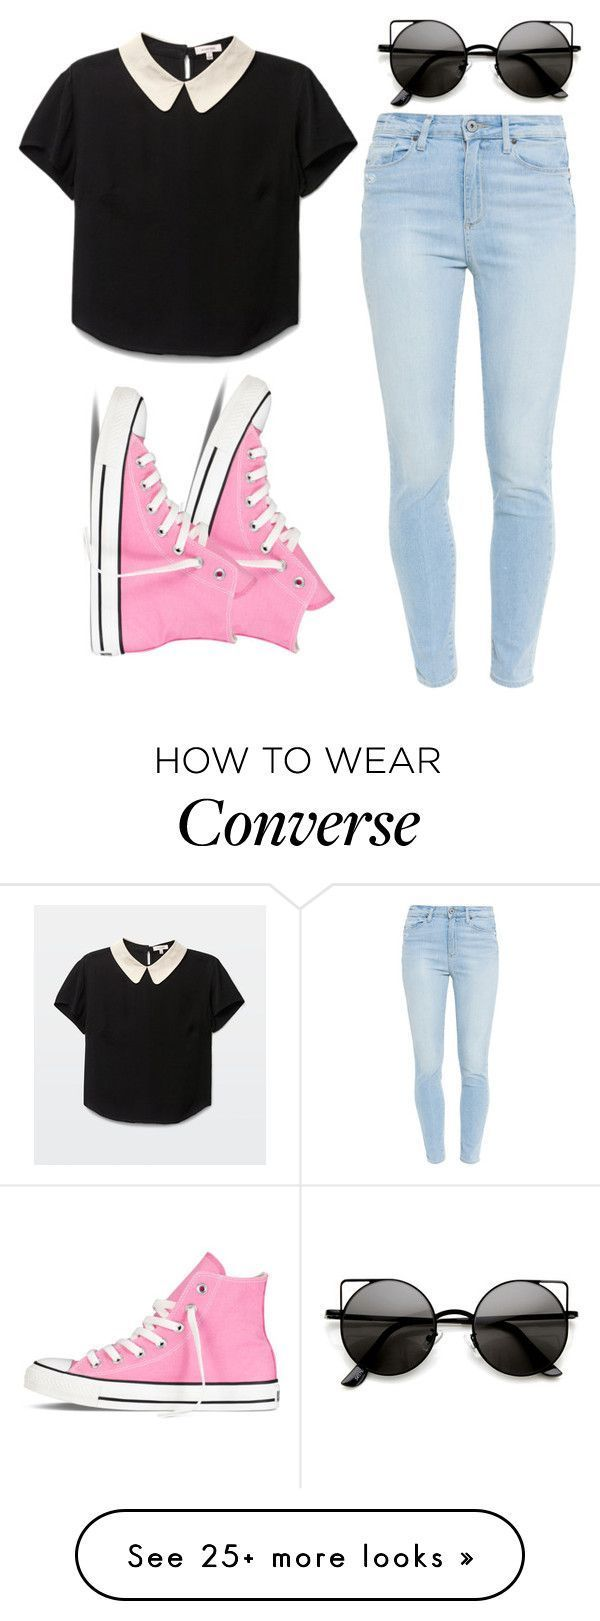 """Untitled #908"" by stylejuliet26 on Polyvore featuring Converse and Paige Denim – Natalie Daniluk"